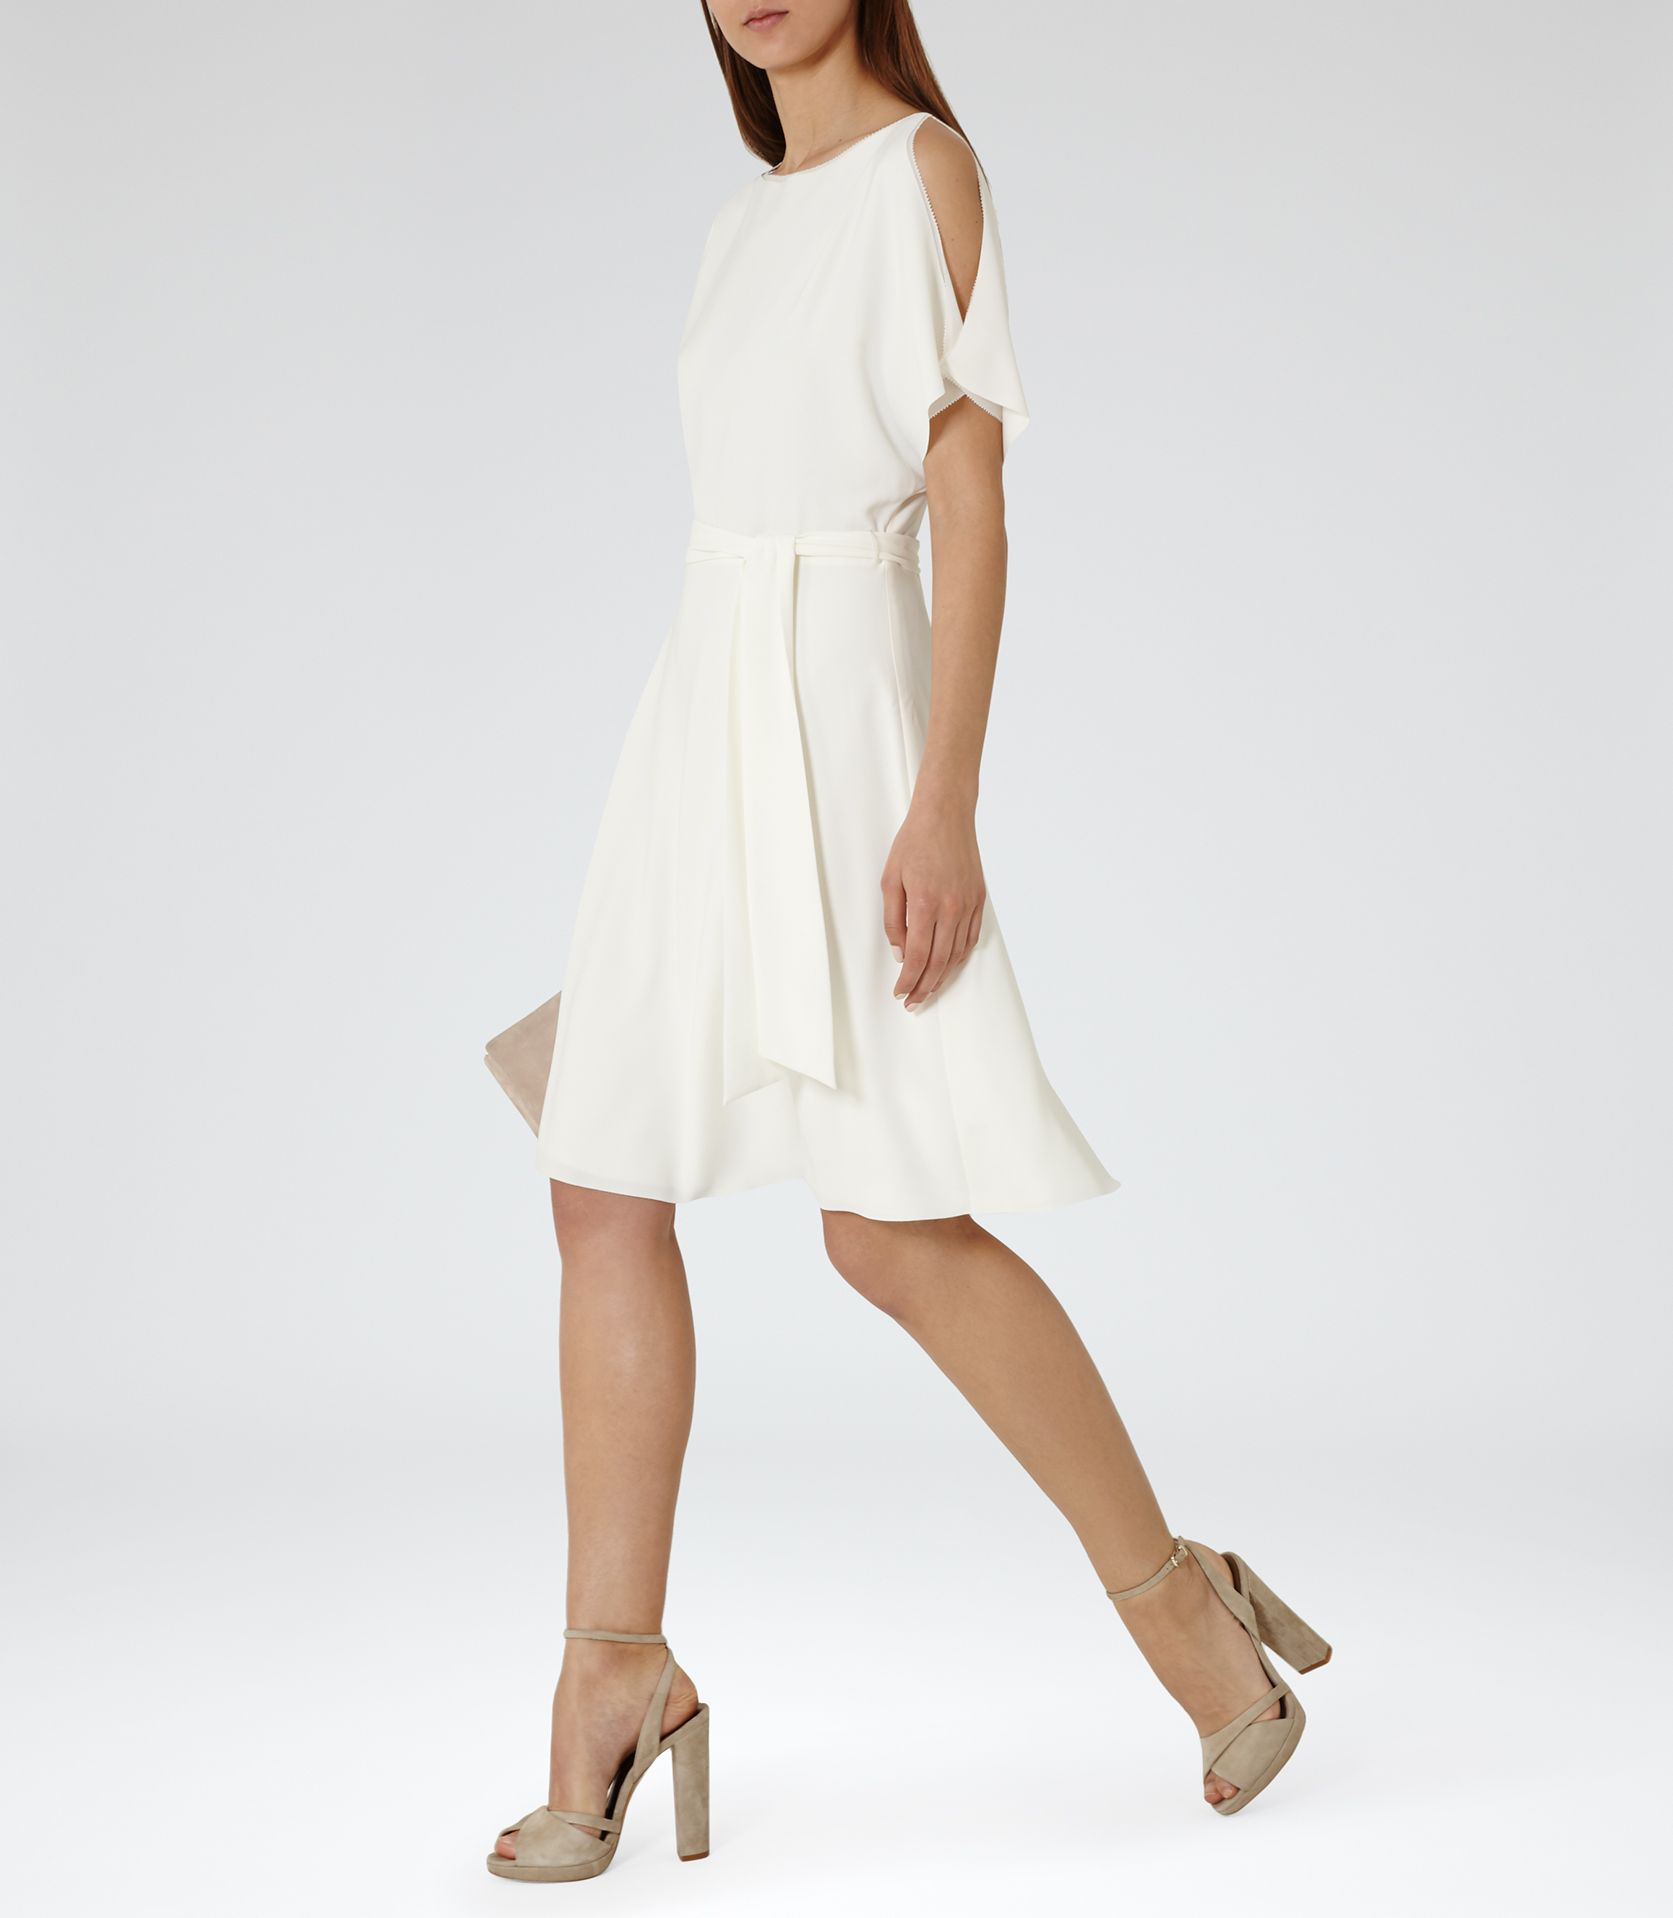 07a0d1b4f3a3 Womens White Sleeve-detail Dress - Reiss Hermione | all the pretty ...